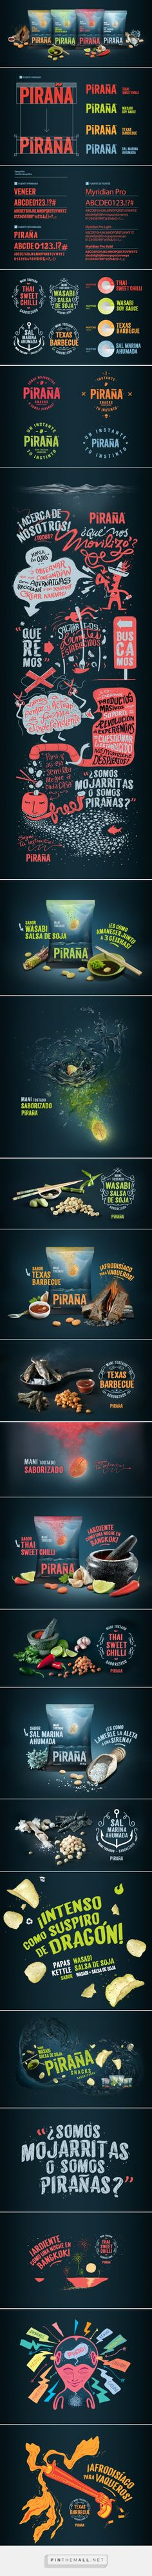 PIRAÑA SNACKS by NNSS In-consciente Visual